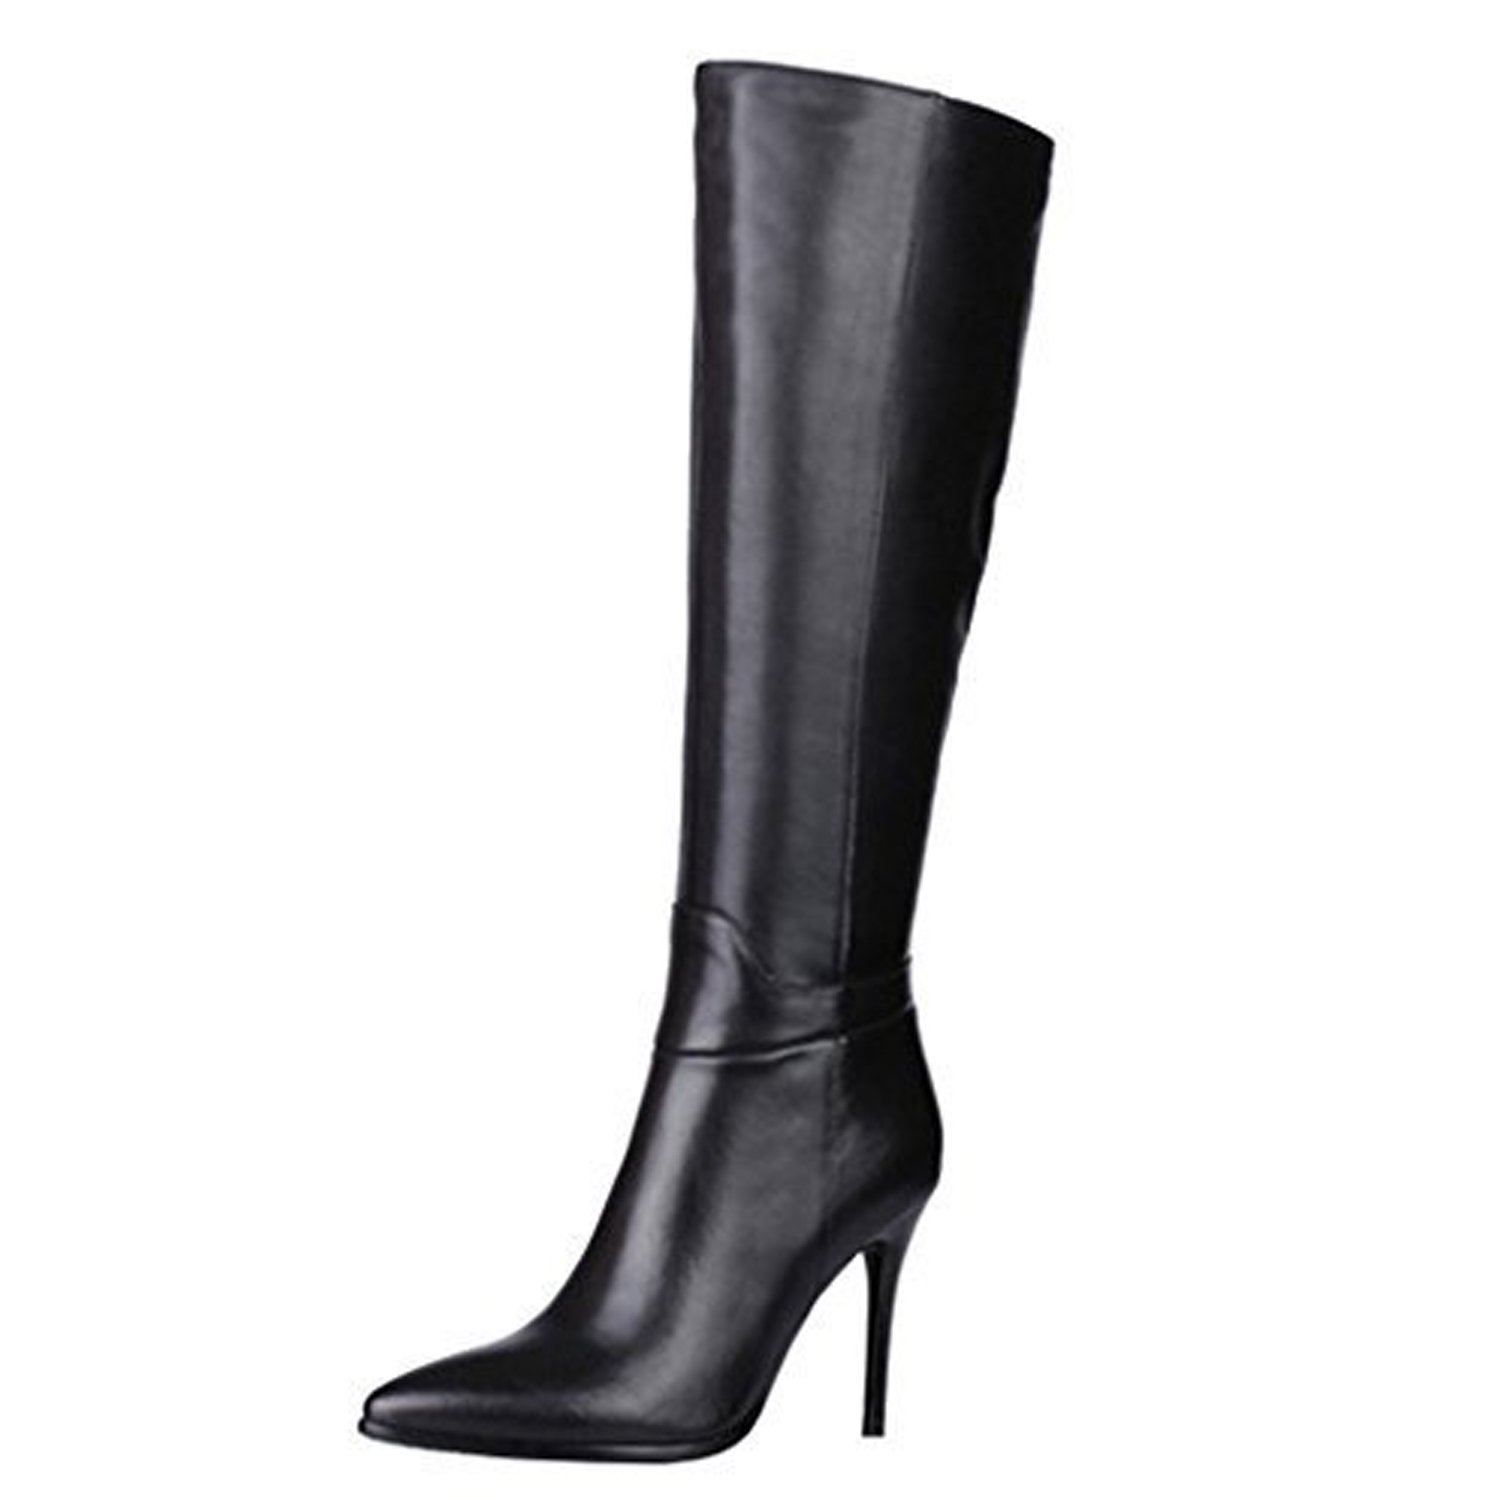 VOCOSI Women's Black Leather Over The Knee Boots Pointy Toe Side-Zip High Heels Dress Boots Black 7 US